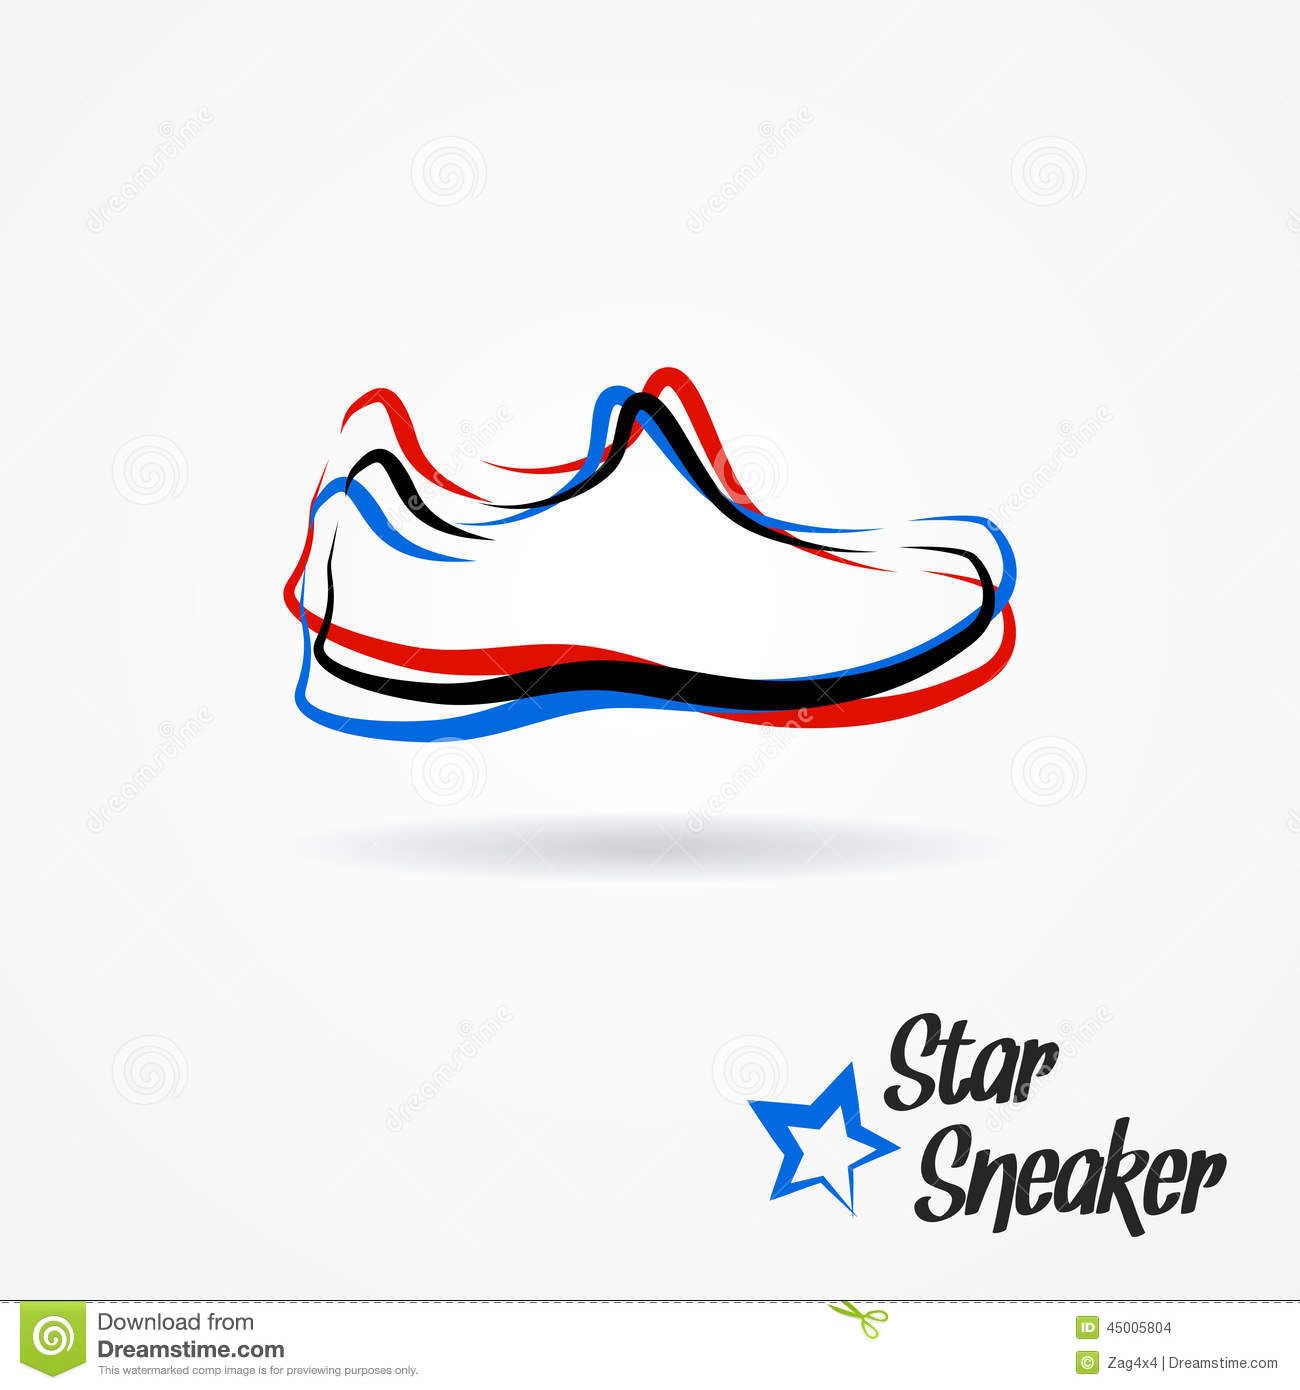 Free footwear logo design